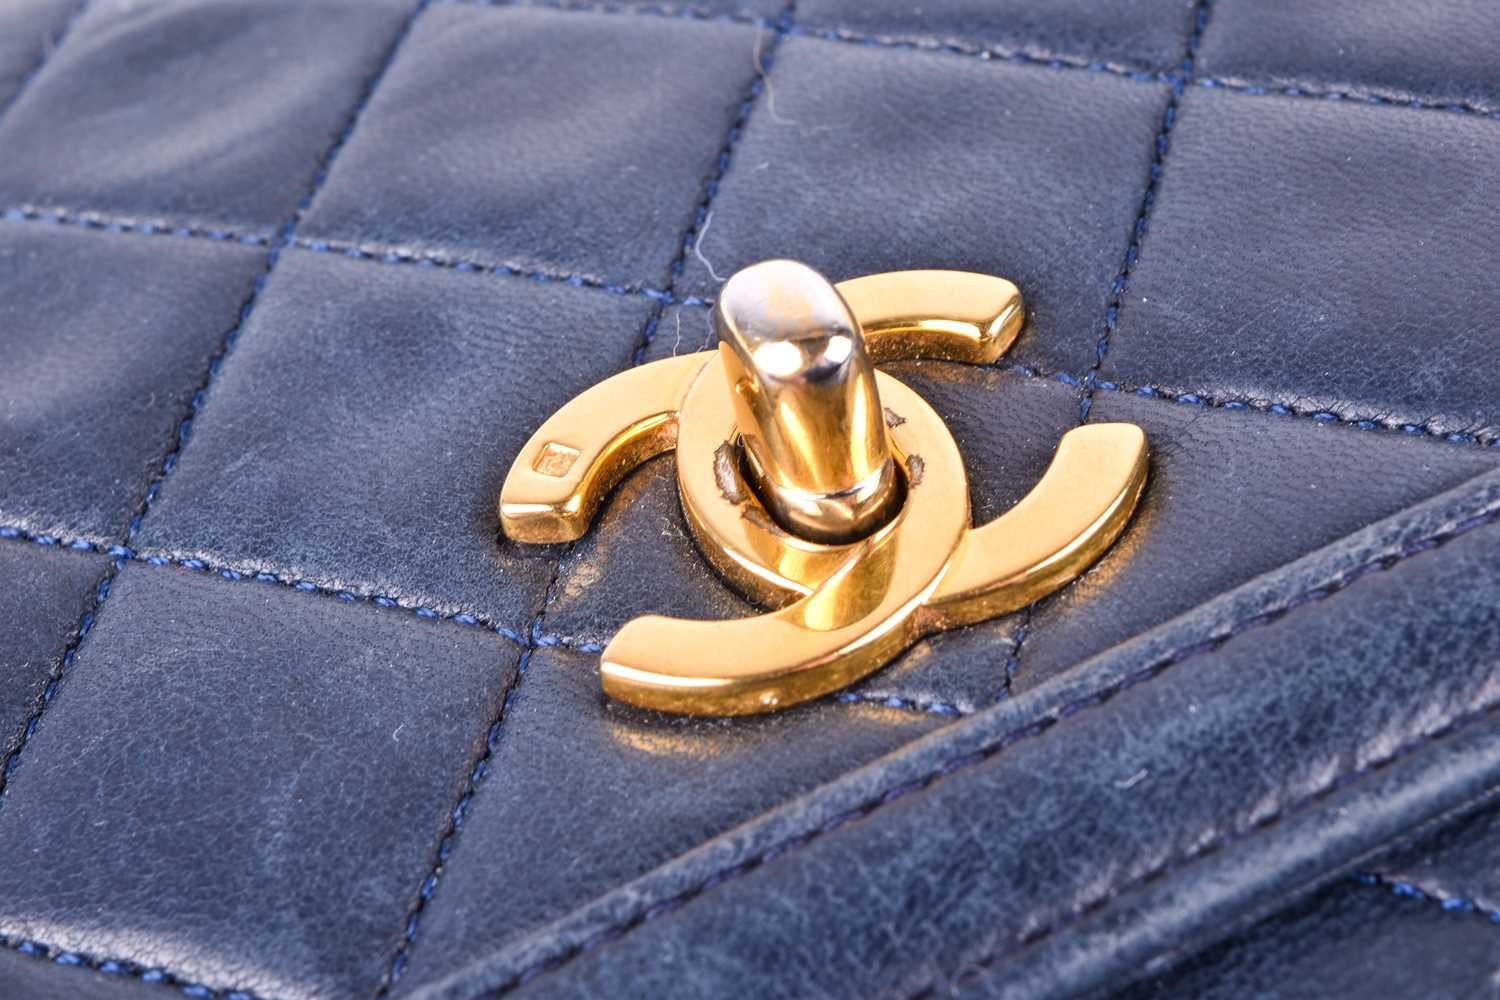 Chanel. A classic quilted leather handbag, of tapered square design, with gold tone CC logo clasp, - Image 9 of 26